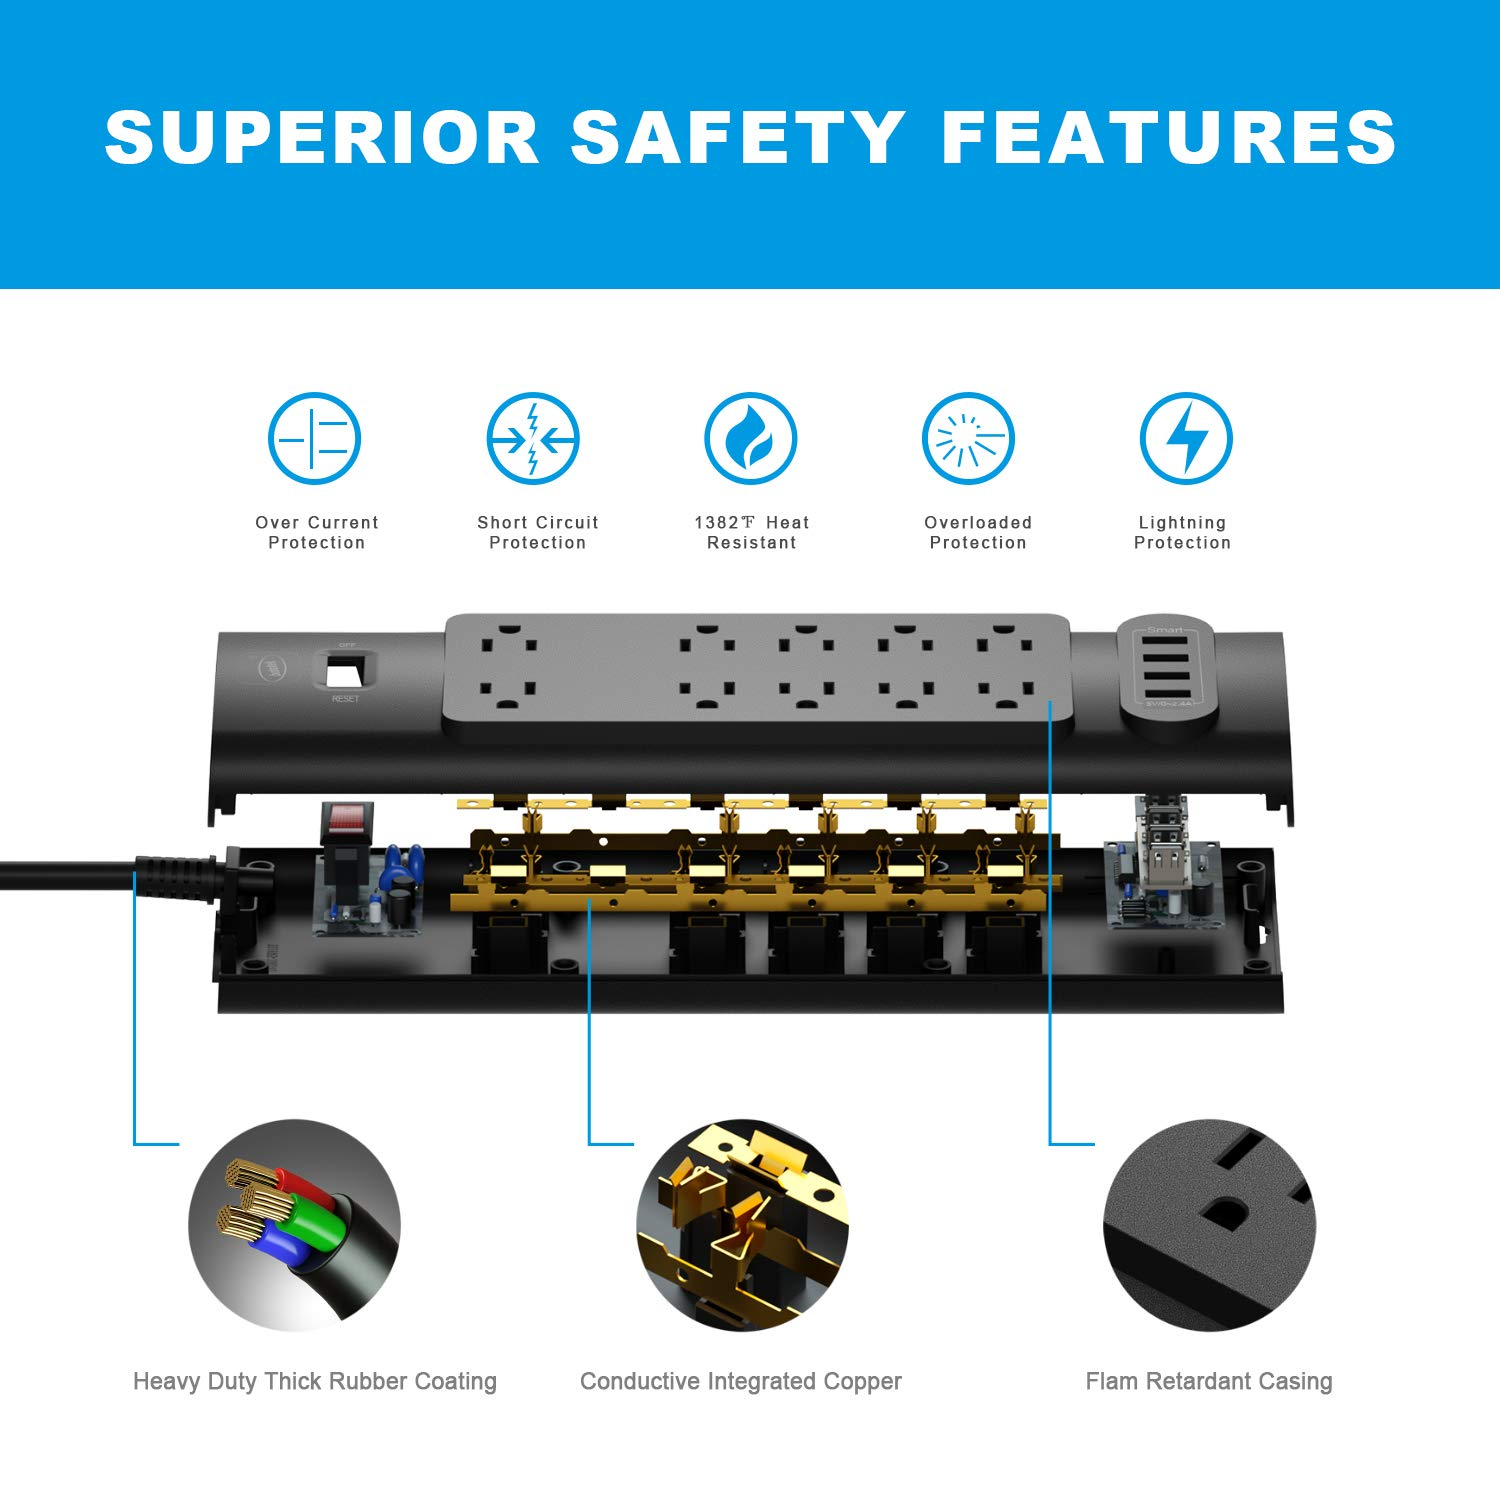 Power Strip, Bototek Surge Protector with 10 AC Outlets and 4 USB Charging Ports,1625W/13A 6 Feet Long Extension Cord for Smartphone Tablets Home,Office & Hotel- Black by bototek (Image #4)